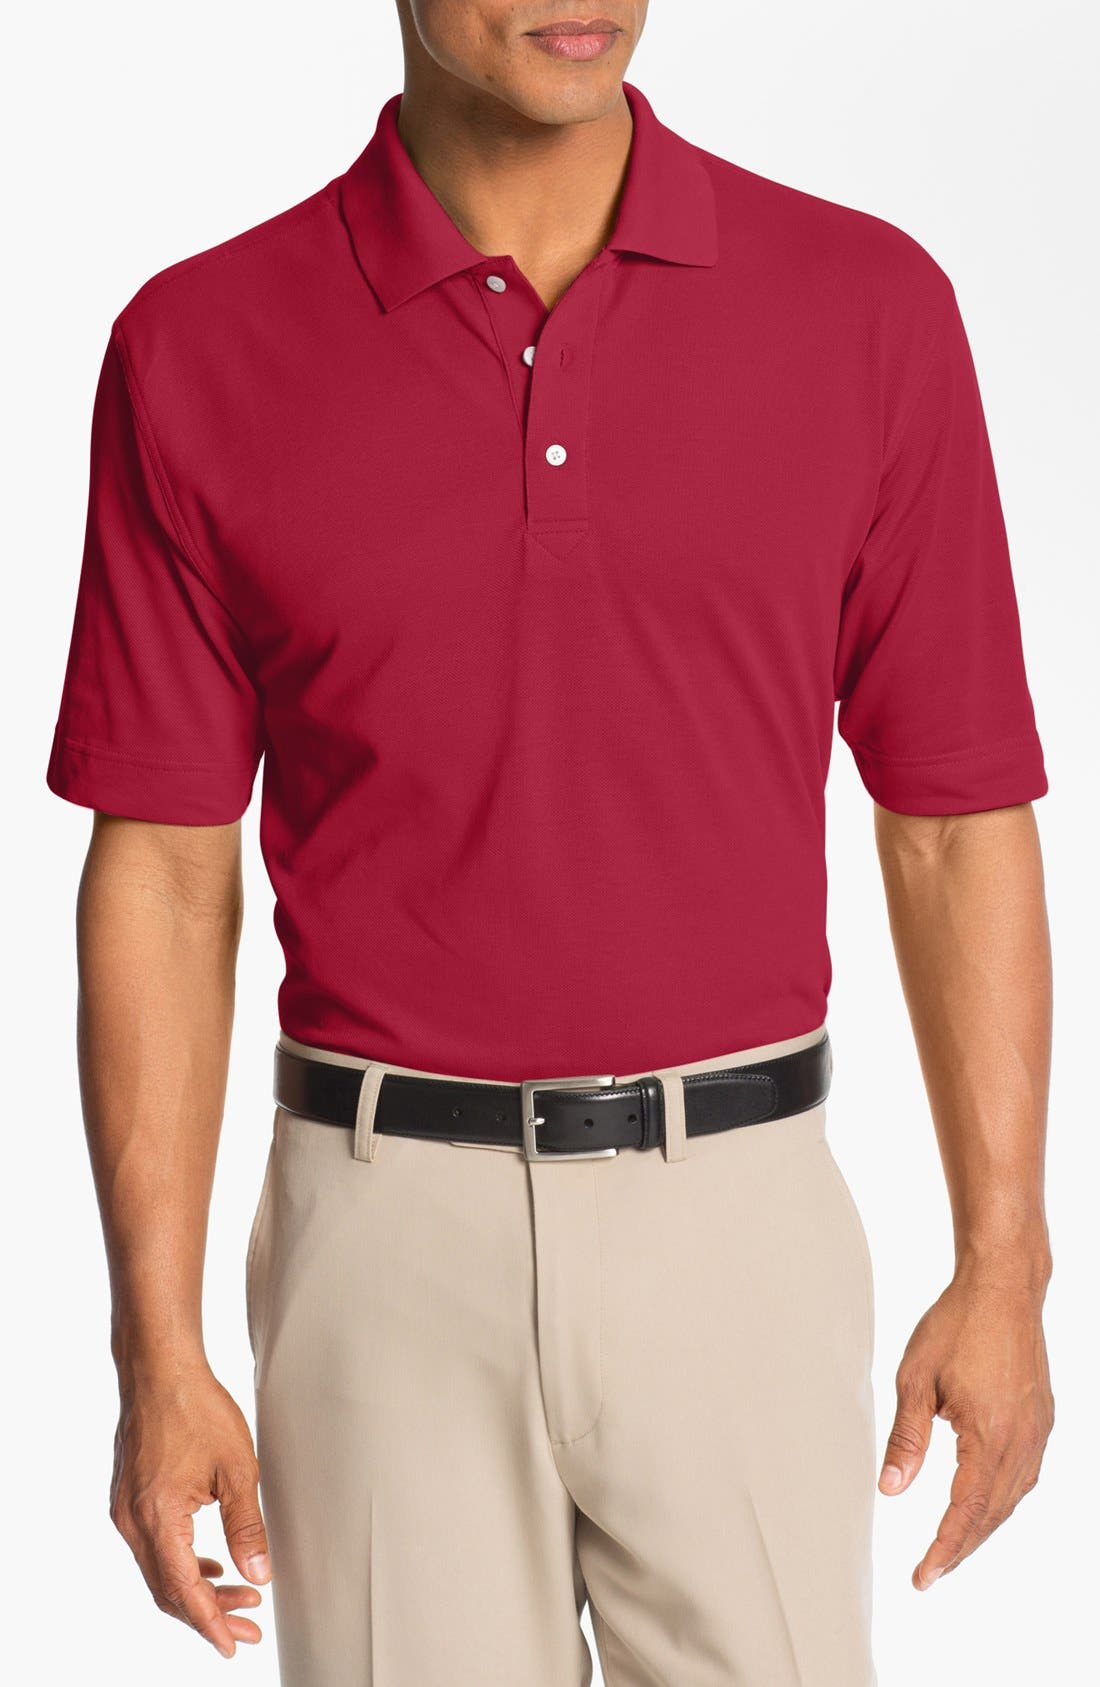 Main Image - Cutter & Buck Championship DryTec Golf Polo